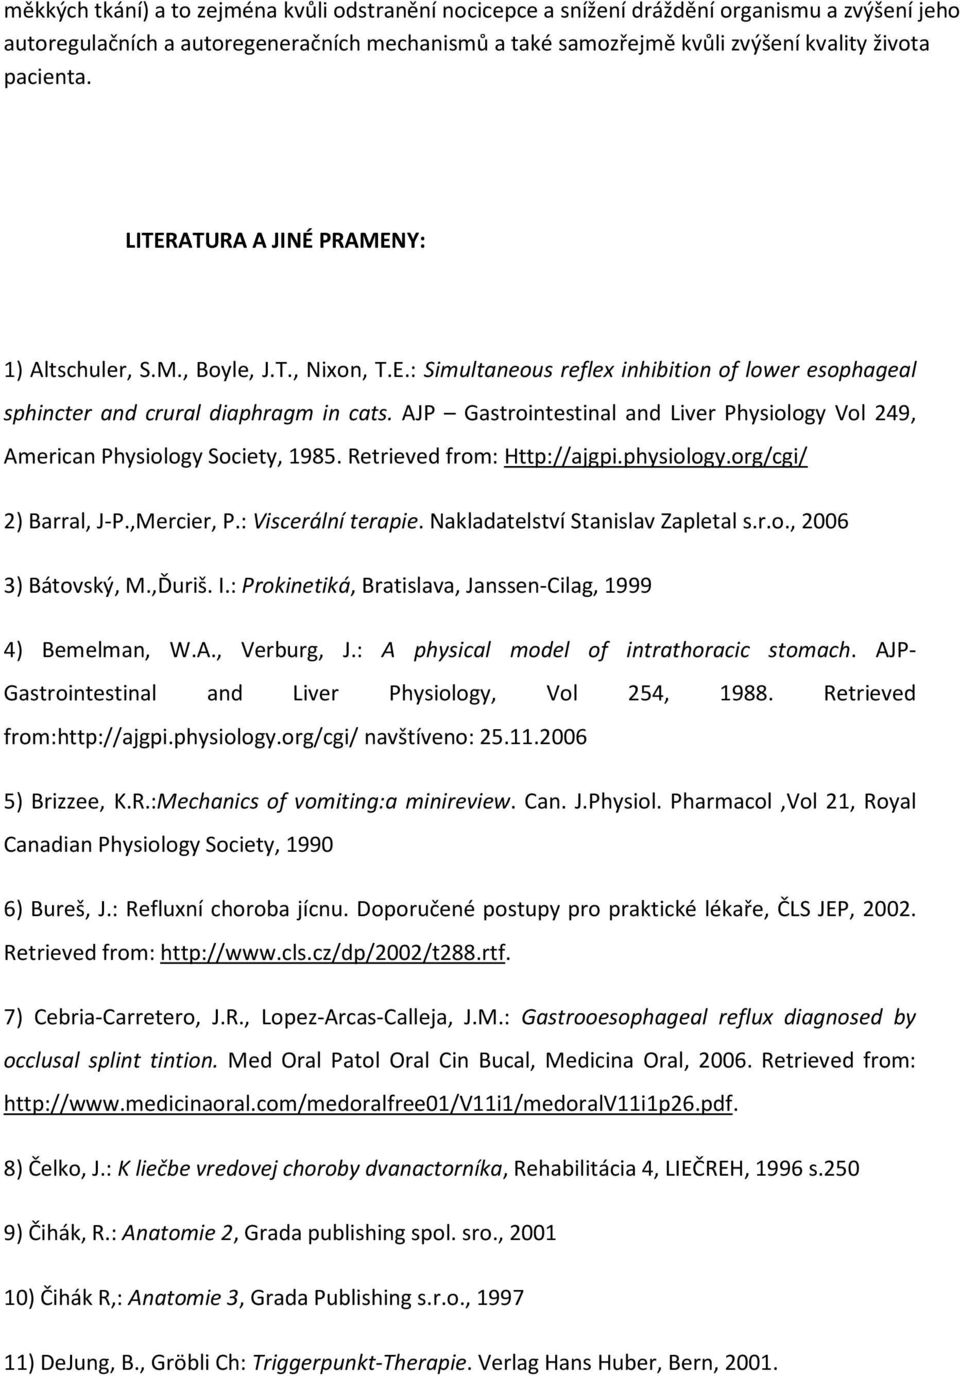 AJP Gastrointestinal and Liver Physiology Vol 249, American Physiology Society, 1985. Retrieved from: Http://ajgpi.physiology.org/cgi/ 2) Barral, J-P.,Mercier, P.: Viscerální terapie.